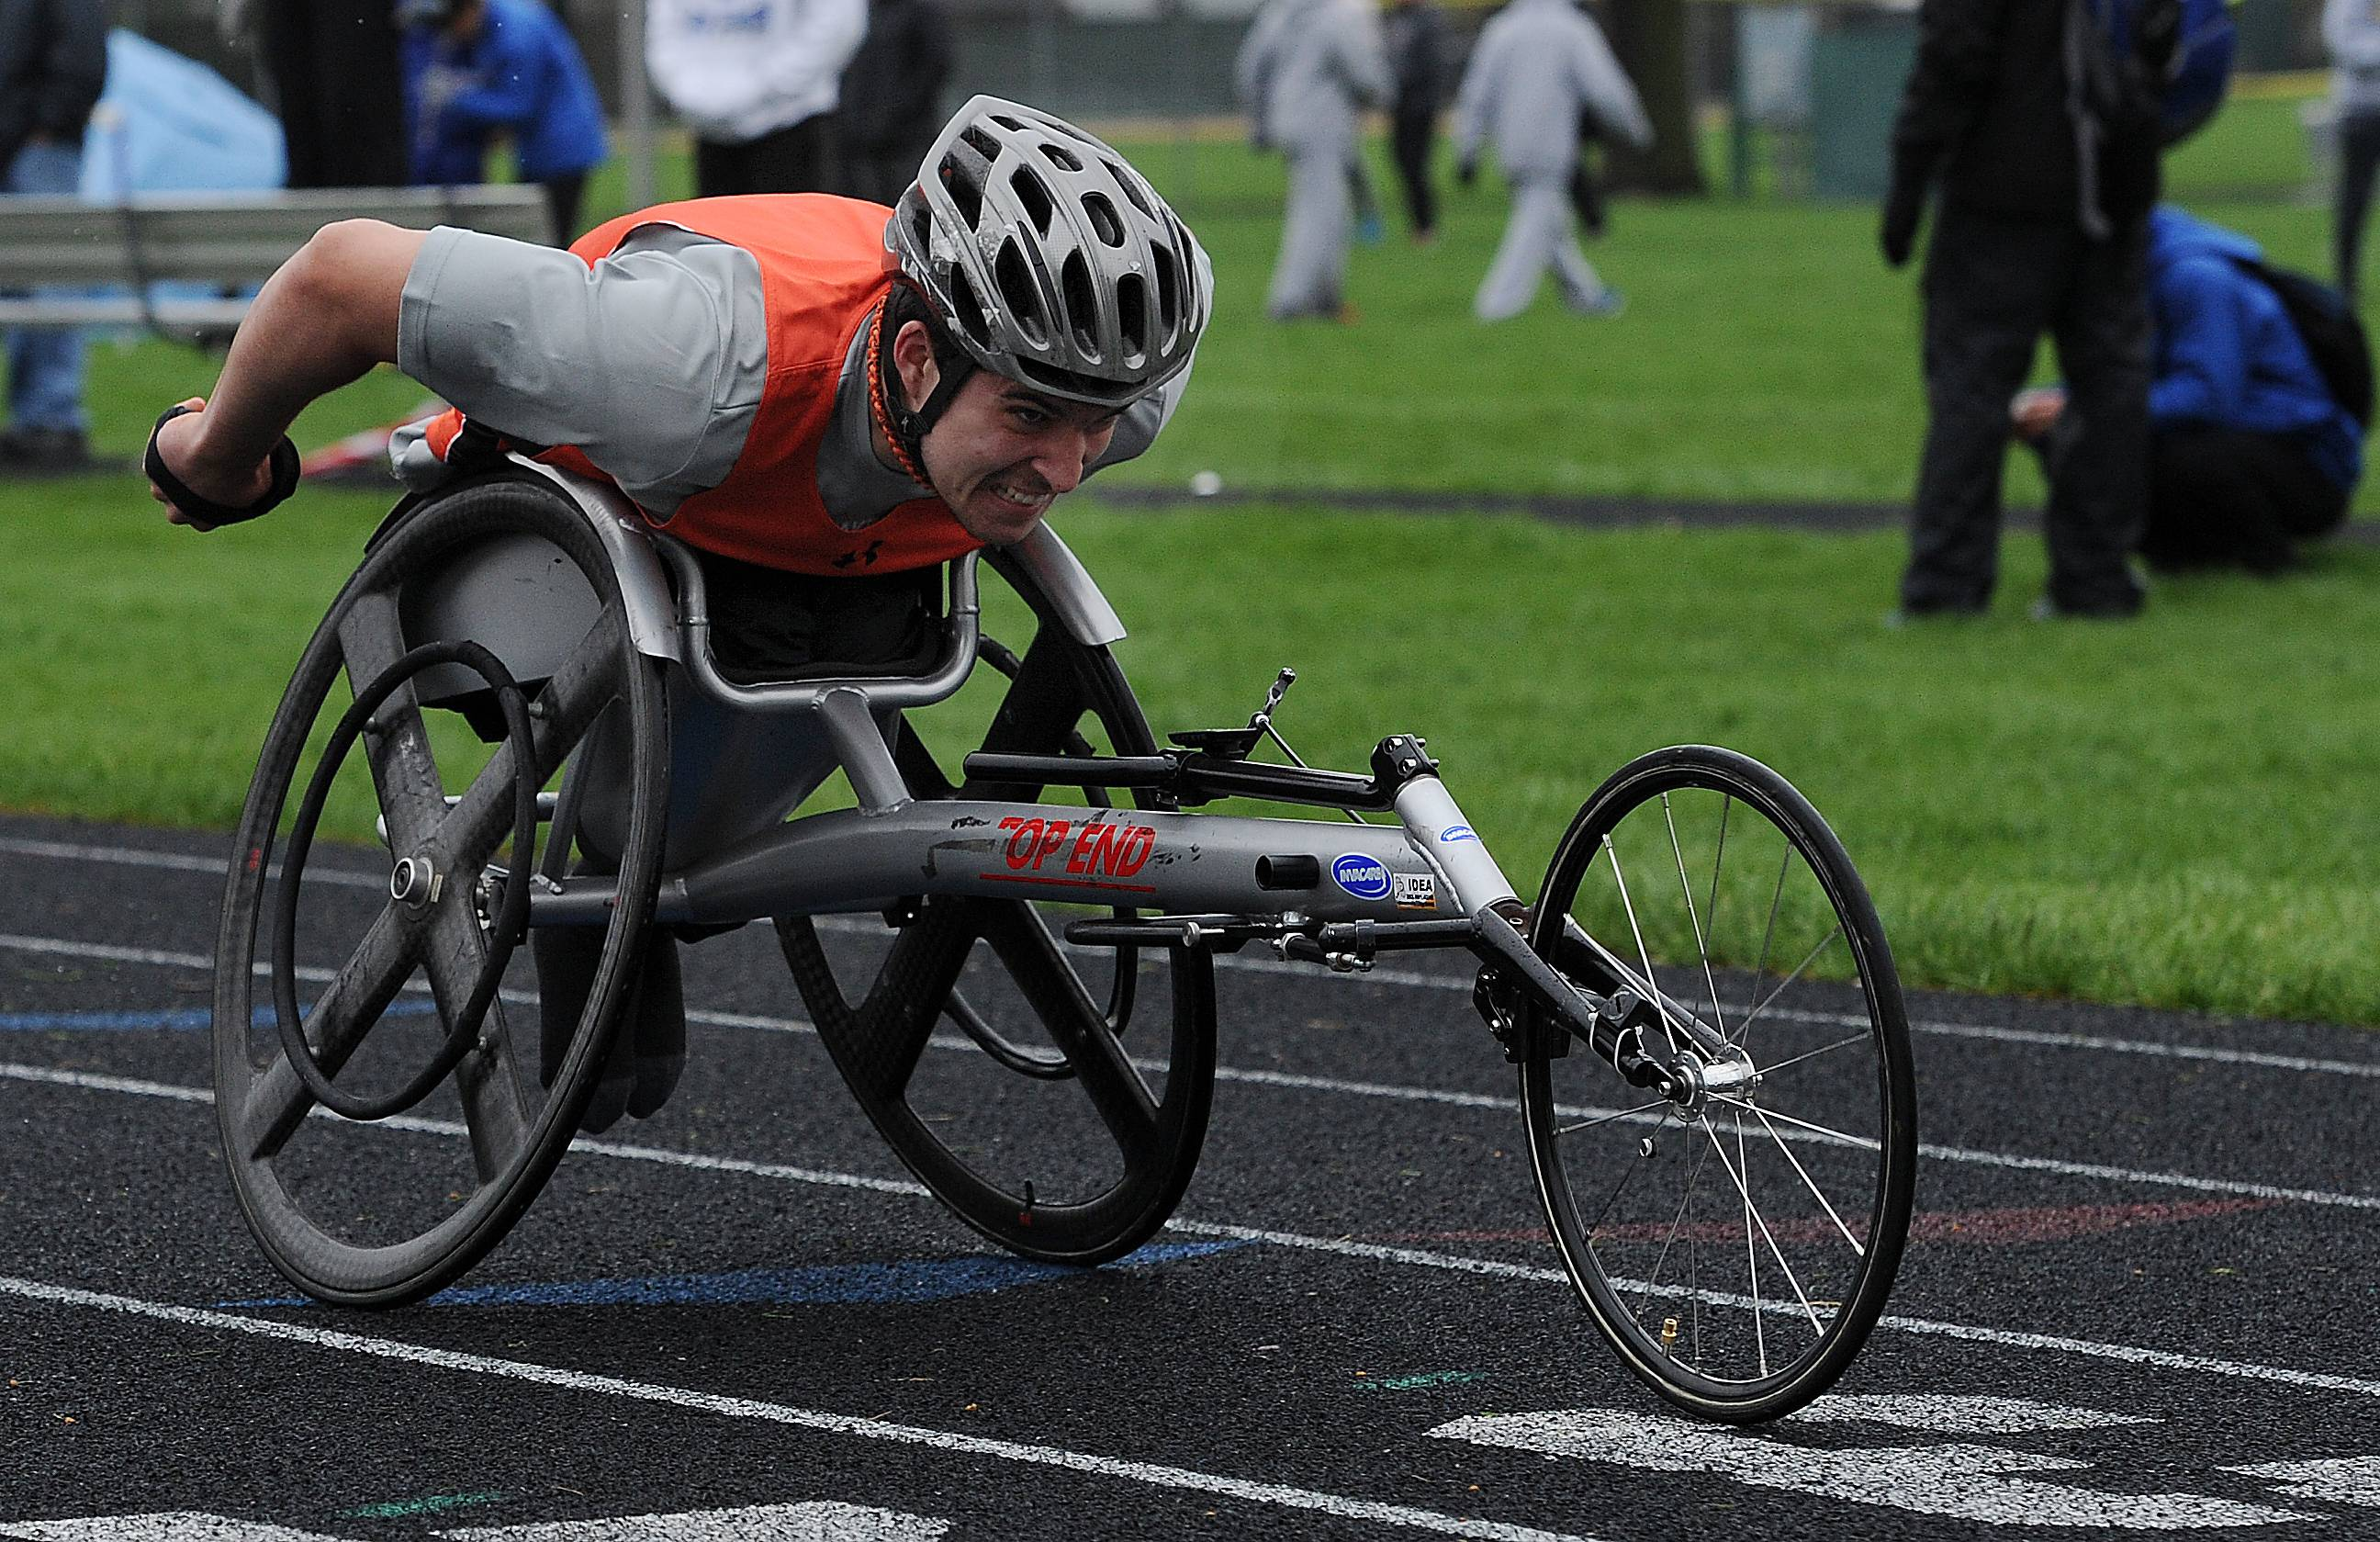 Libertyville's Ethan Burkhart powers ahead in the 100-meter wheelchair race at the NSC championships in Waukegan.